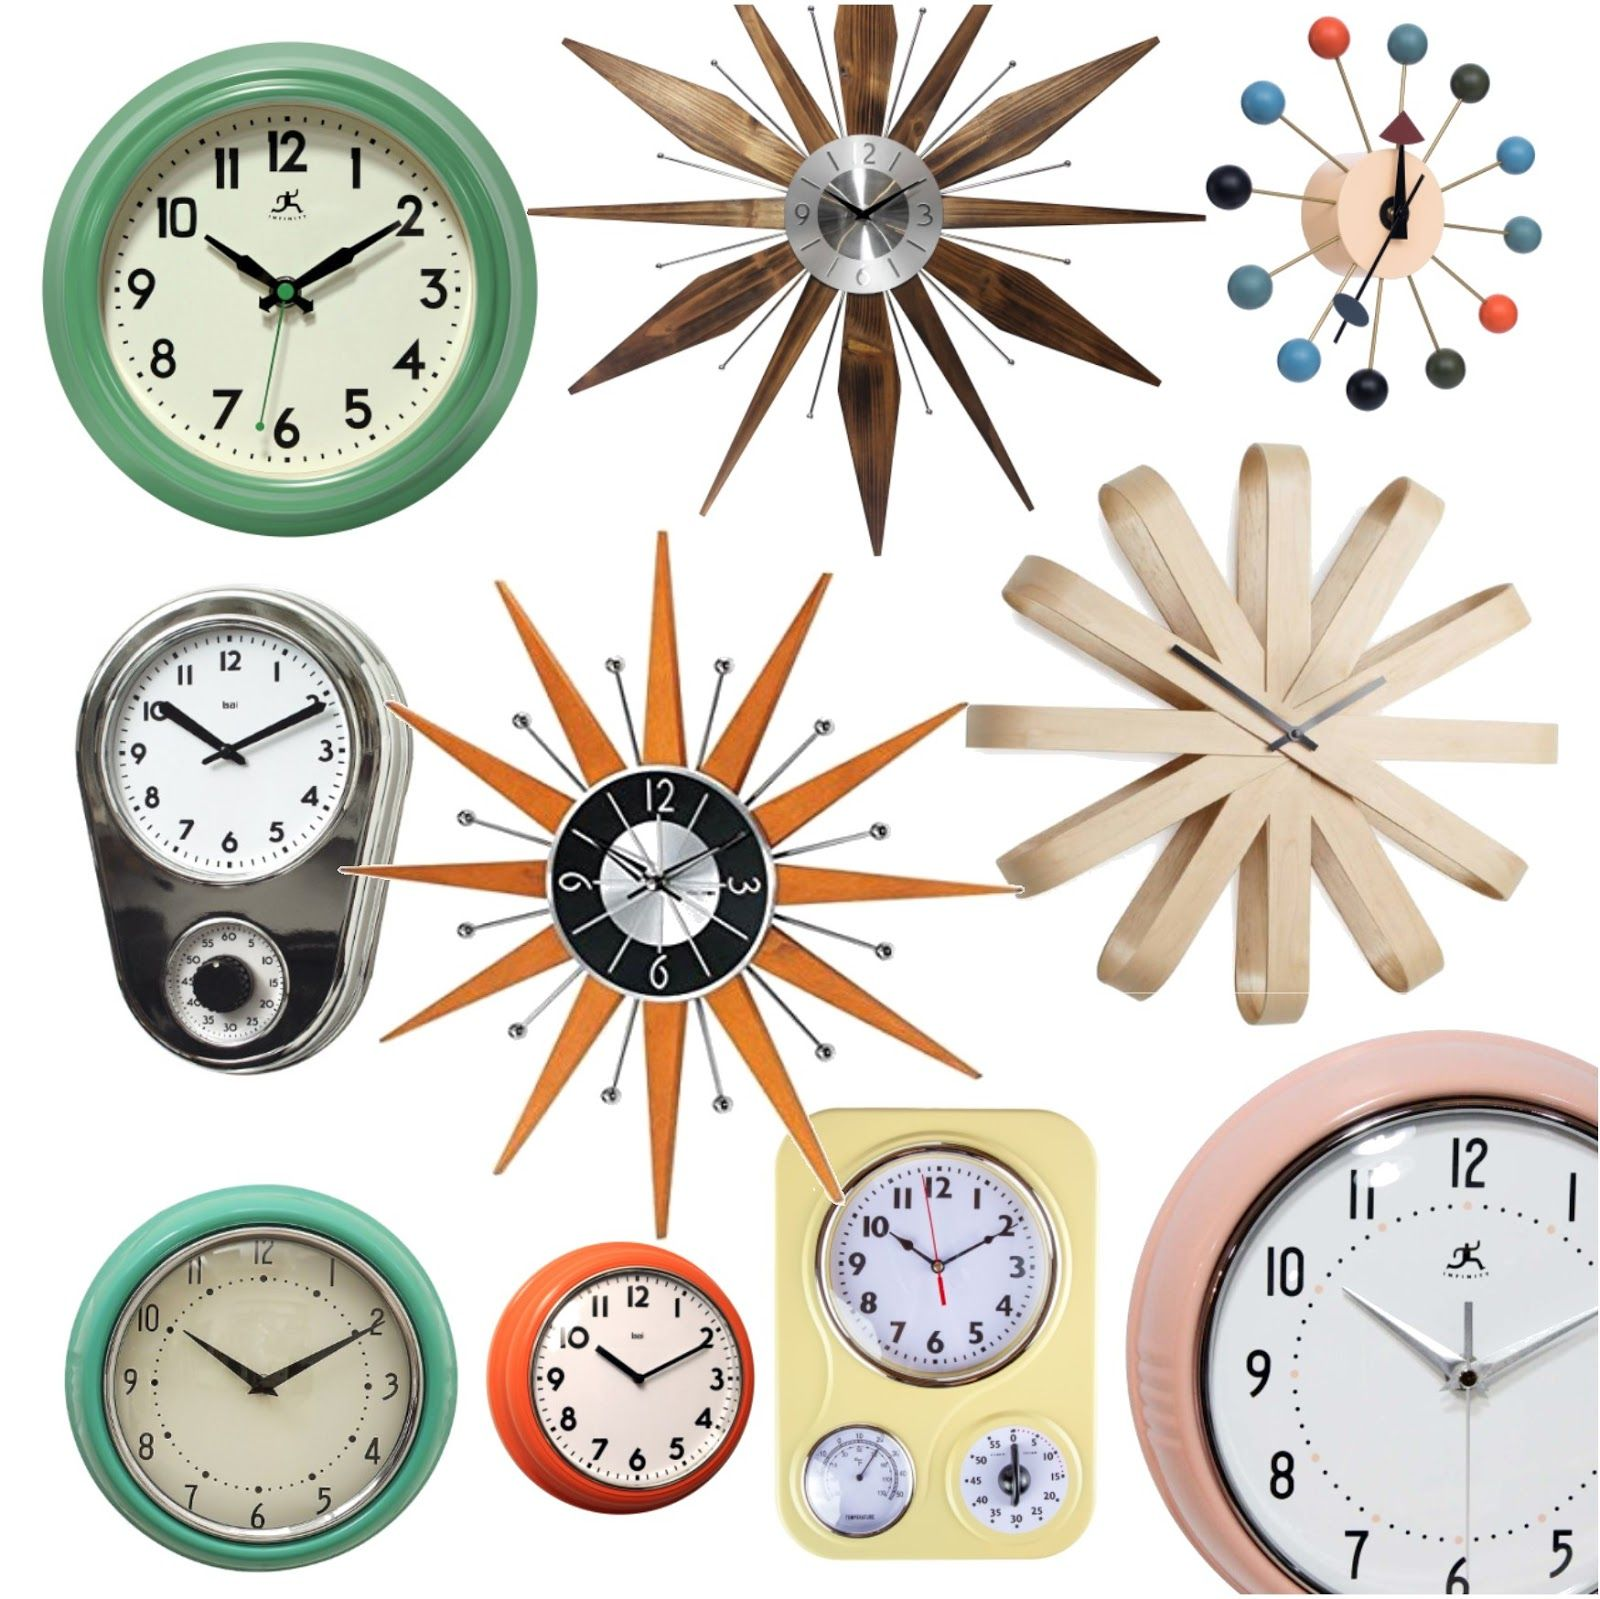 Sources For Affordable Retro Mid Century Inspired Wall Clocks Sew At Home Mummy Mid Century Modern Clocks Retro Wall Clock Retro Home Decor